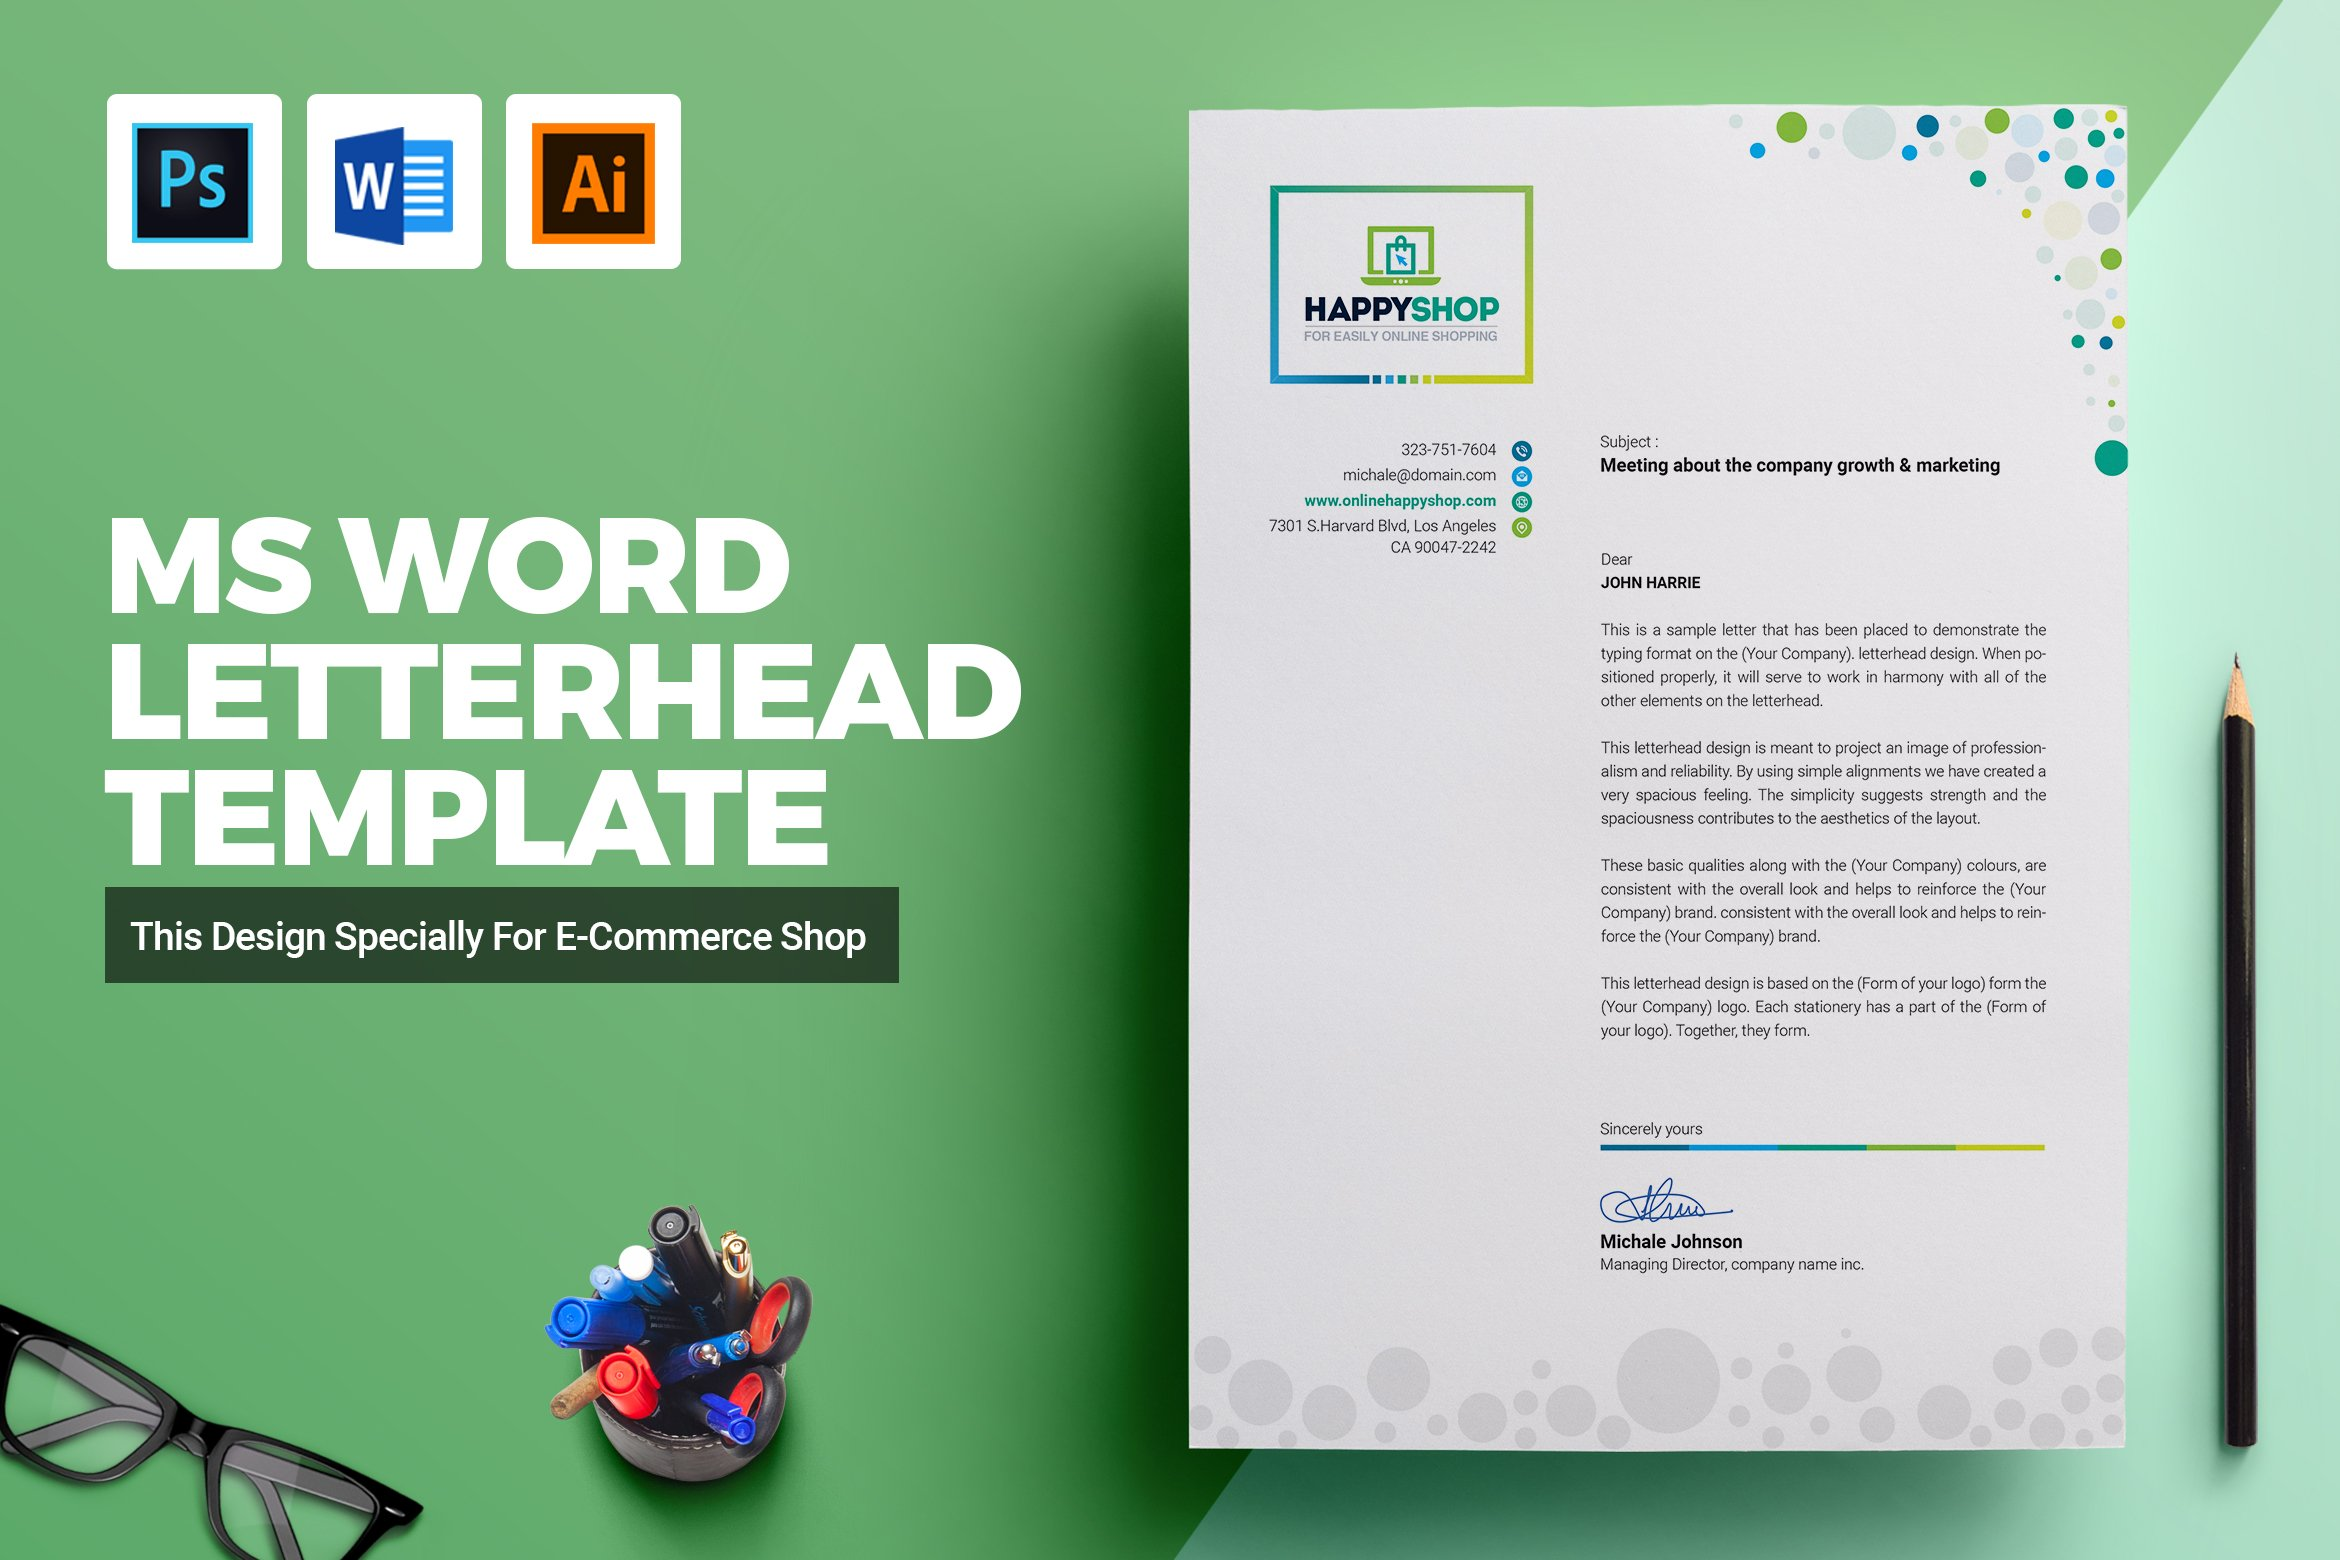 Ms Office Letterhead Template from cmkt-image-prd.freetls.fastly.net